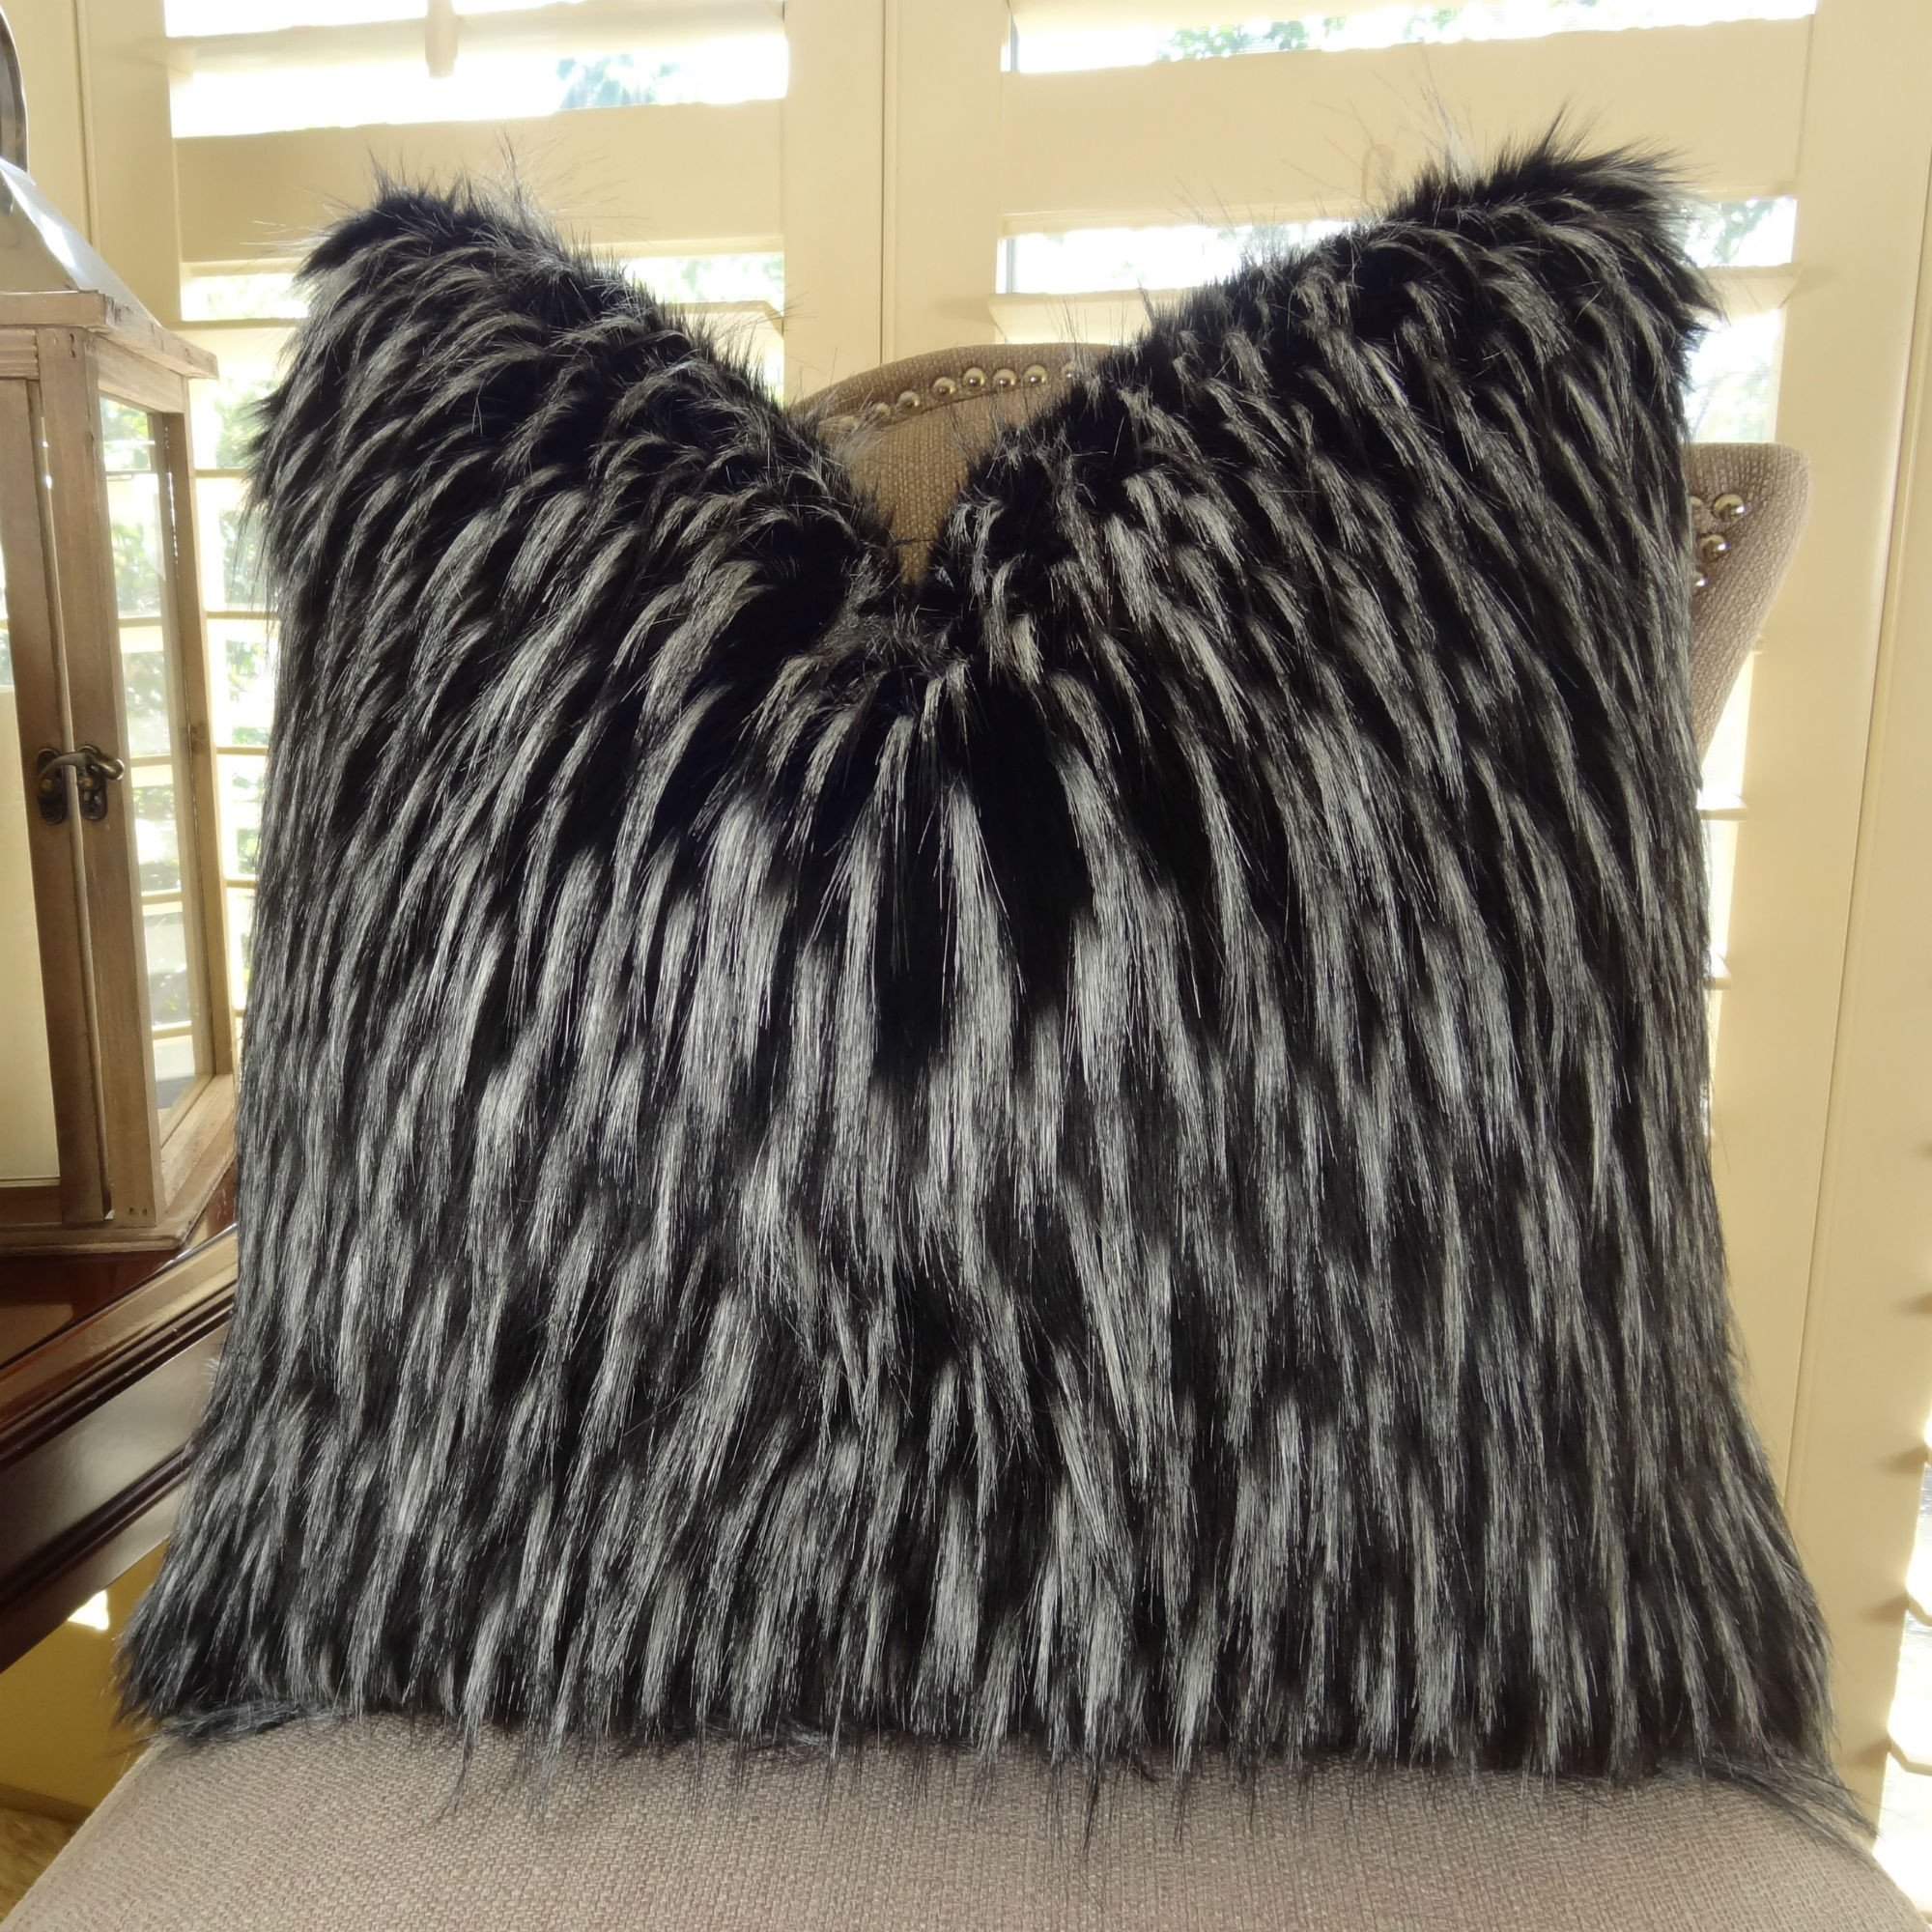 Thomas Collection Black White Fur Throw Pillow, Wolf Faux Fur Accent Pillow, Black White Luxury Faux Fur Throw Pillow, Luxury Plush Faux Fur, COVER ONLY, NO INSERT, Made in America, 17417